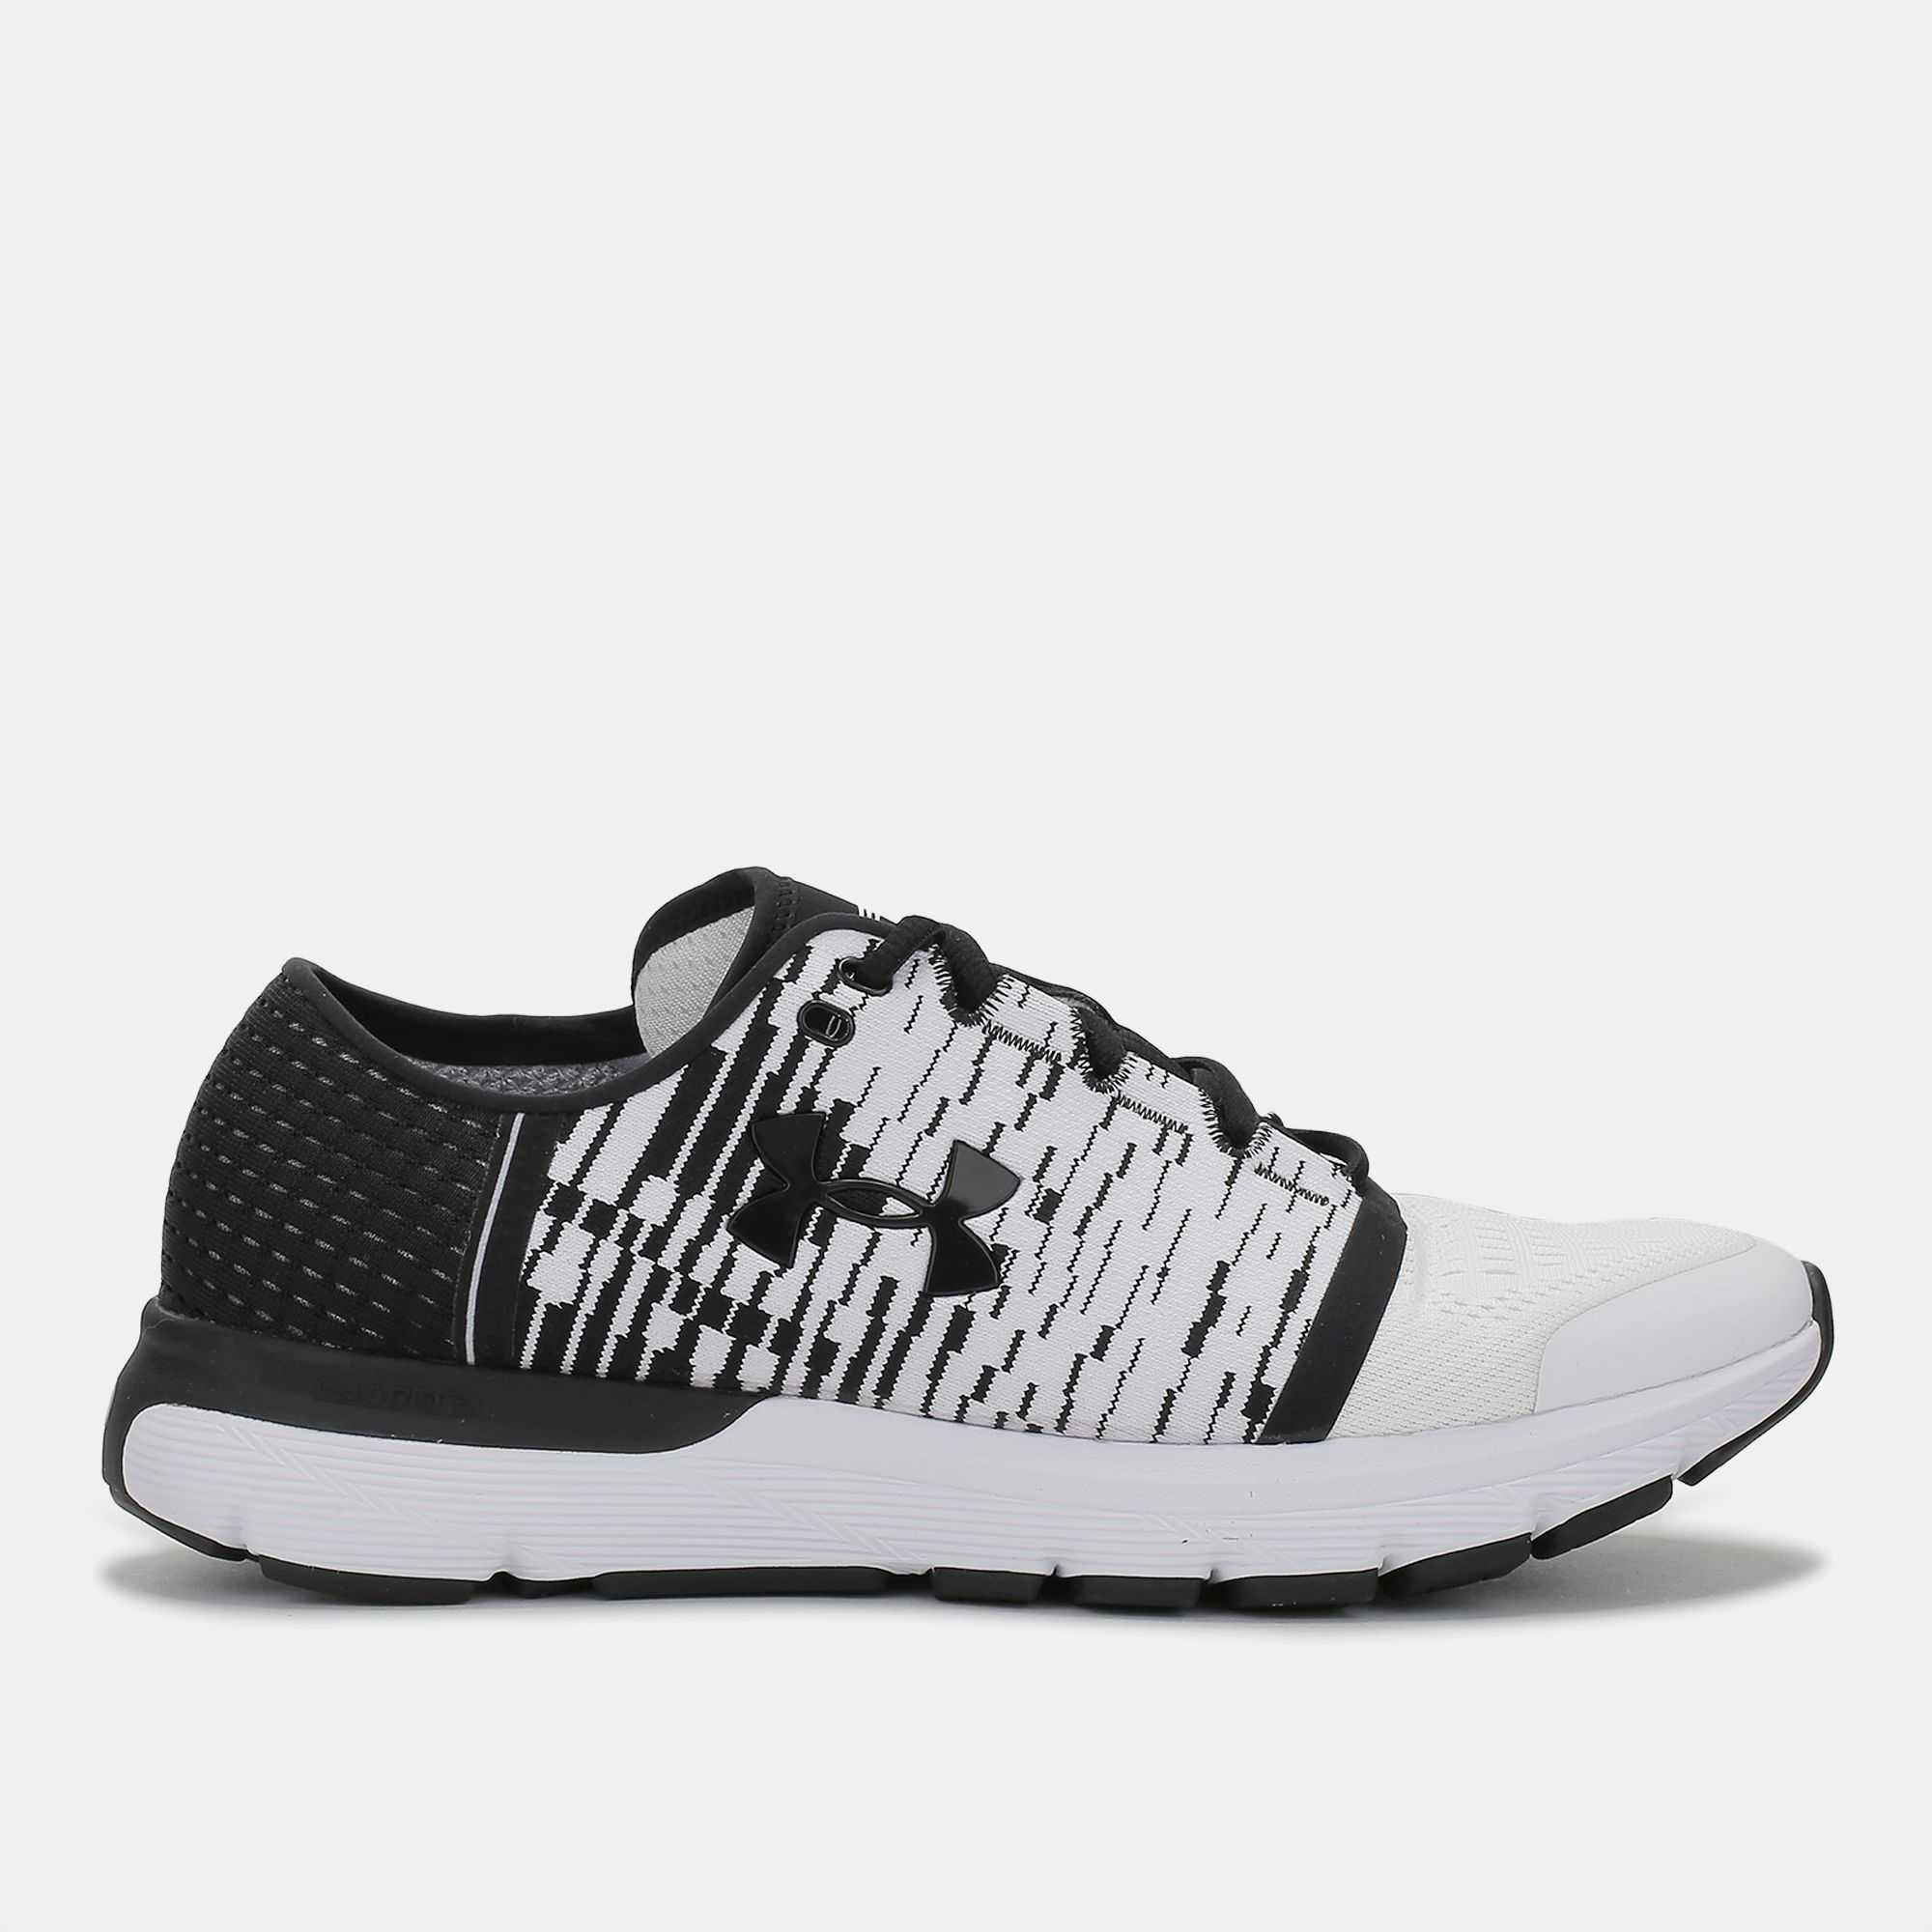 check out 583a8 5082b Shop White Under Armour Speedform Gemini 3 Graphic Running ...